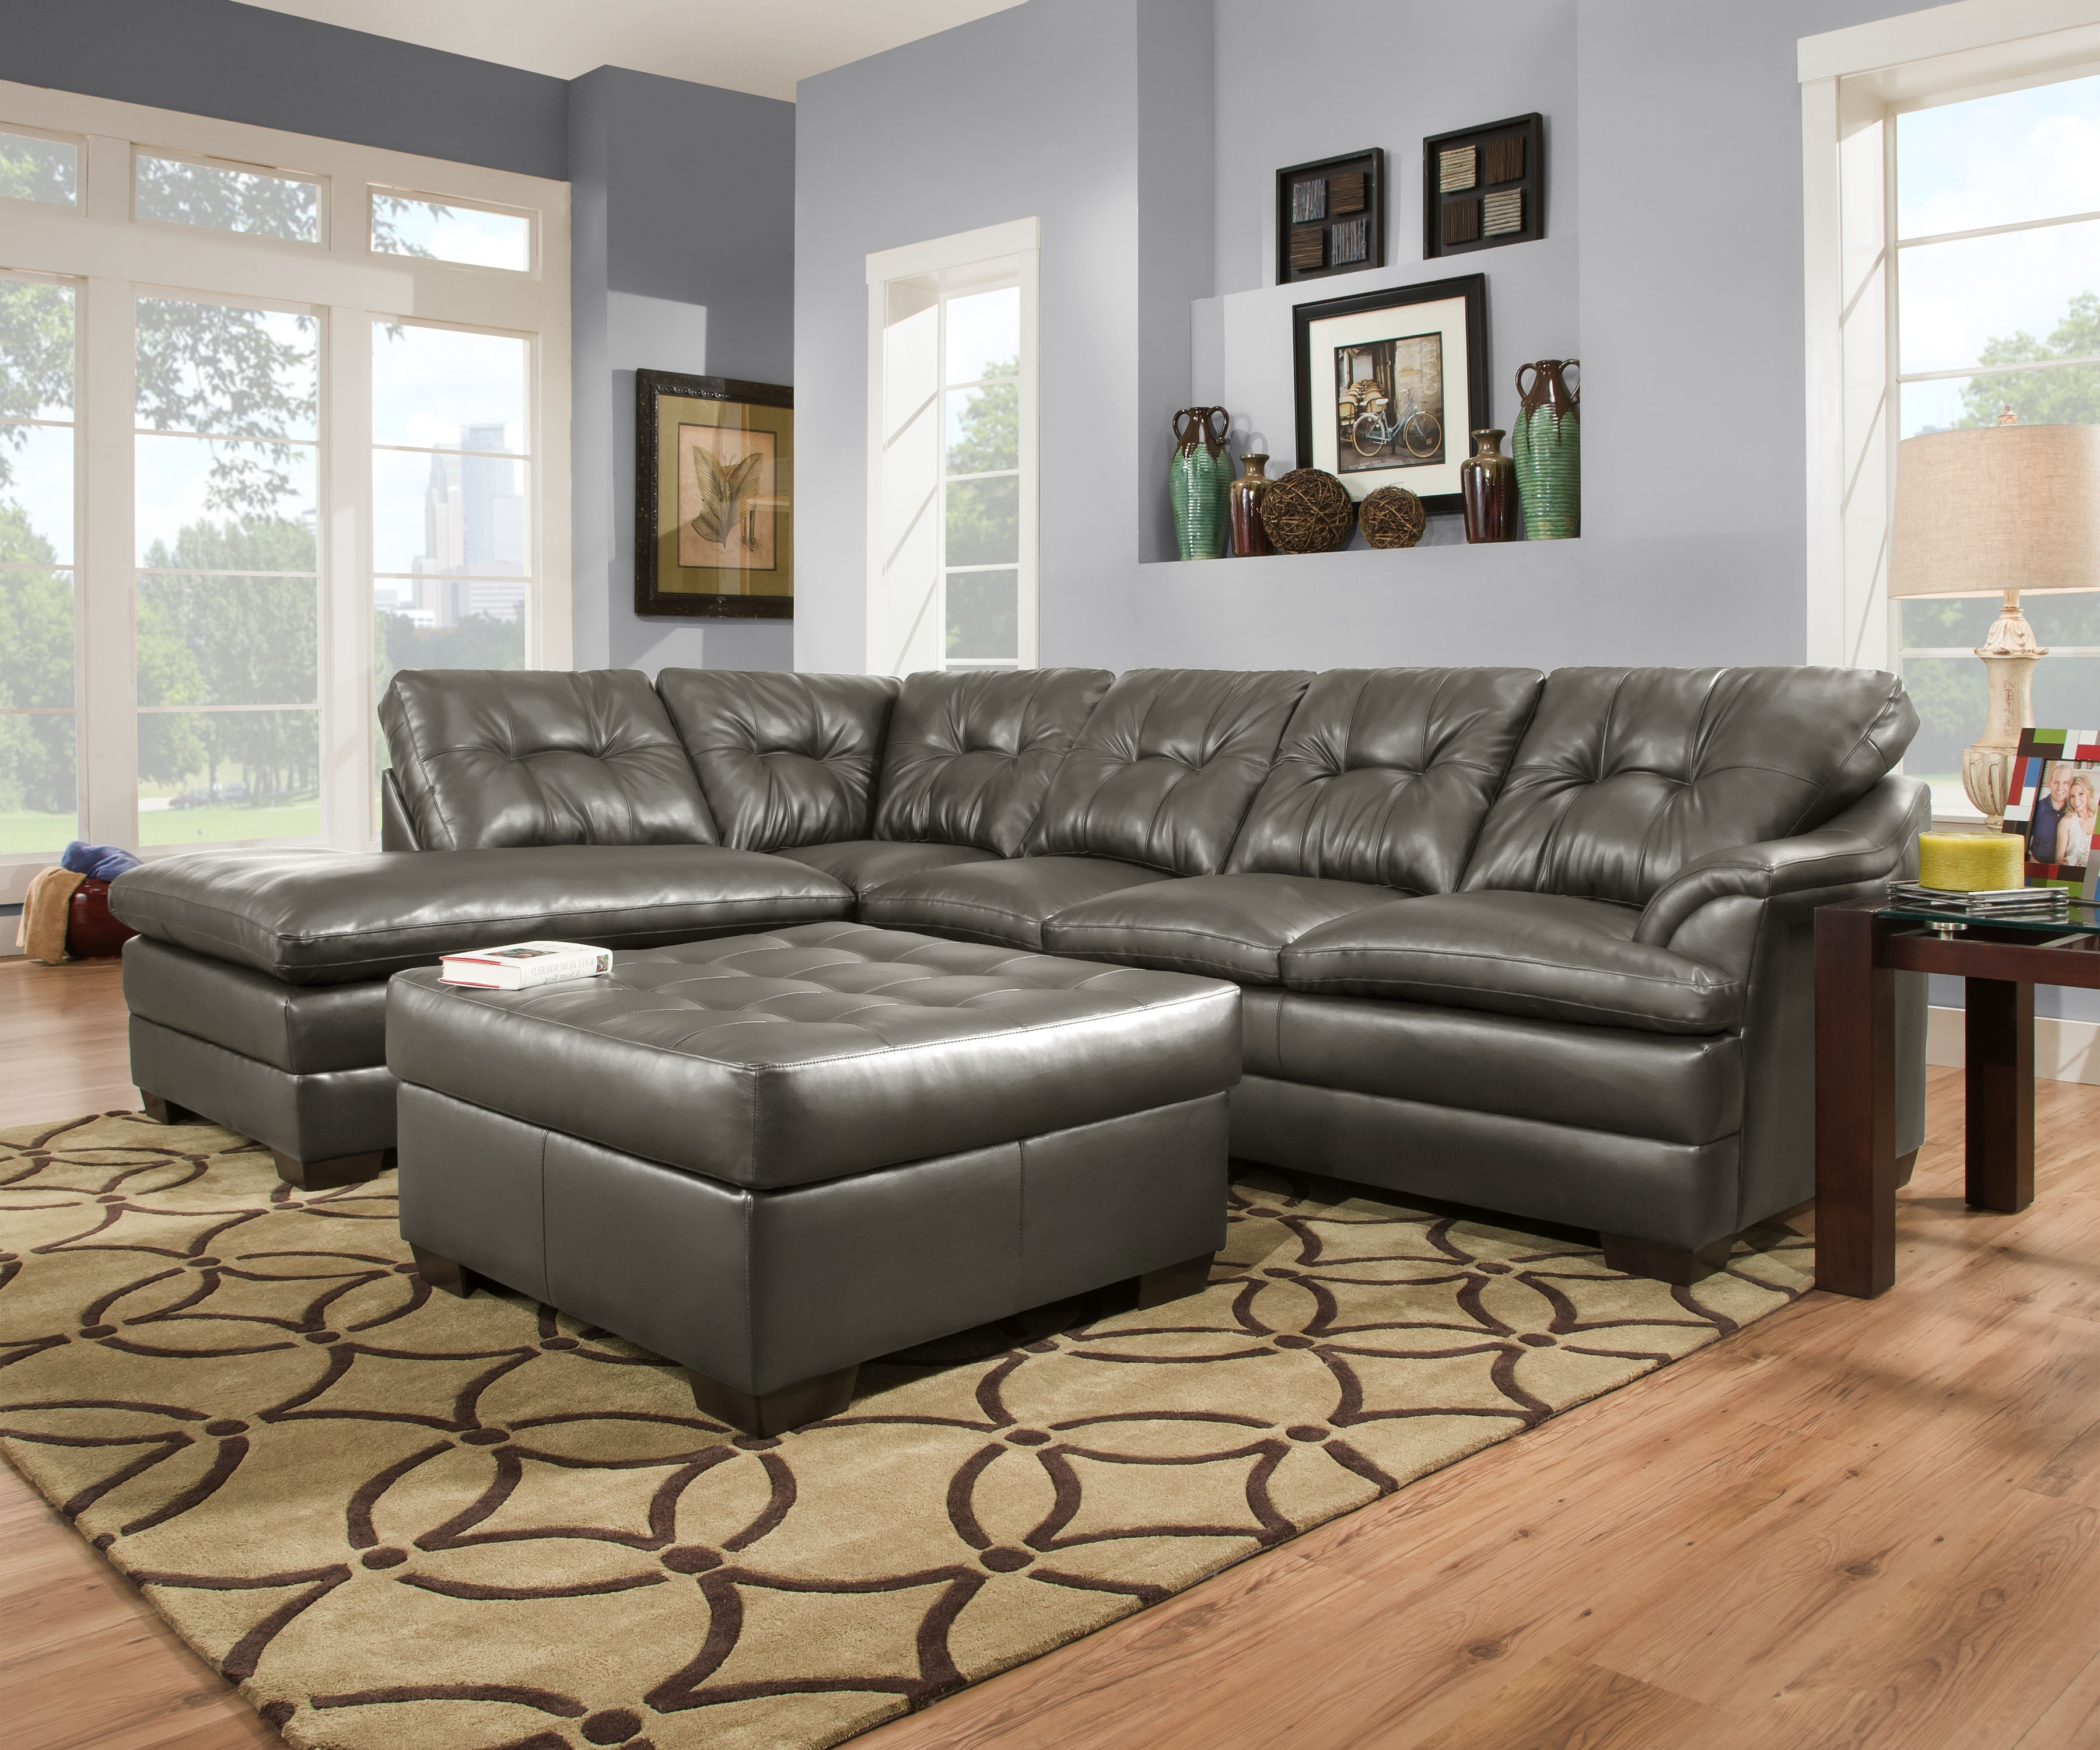 Simmons Chaise Sofas For Favorite Designssimmons – Simmons Apollo Charcoal 2Pc Sectional (View 11 of 20)